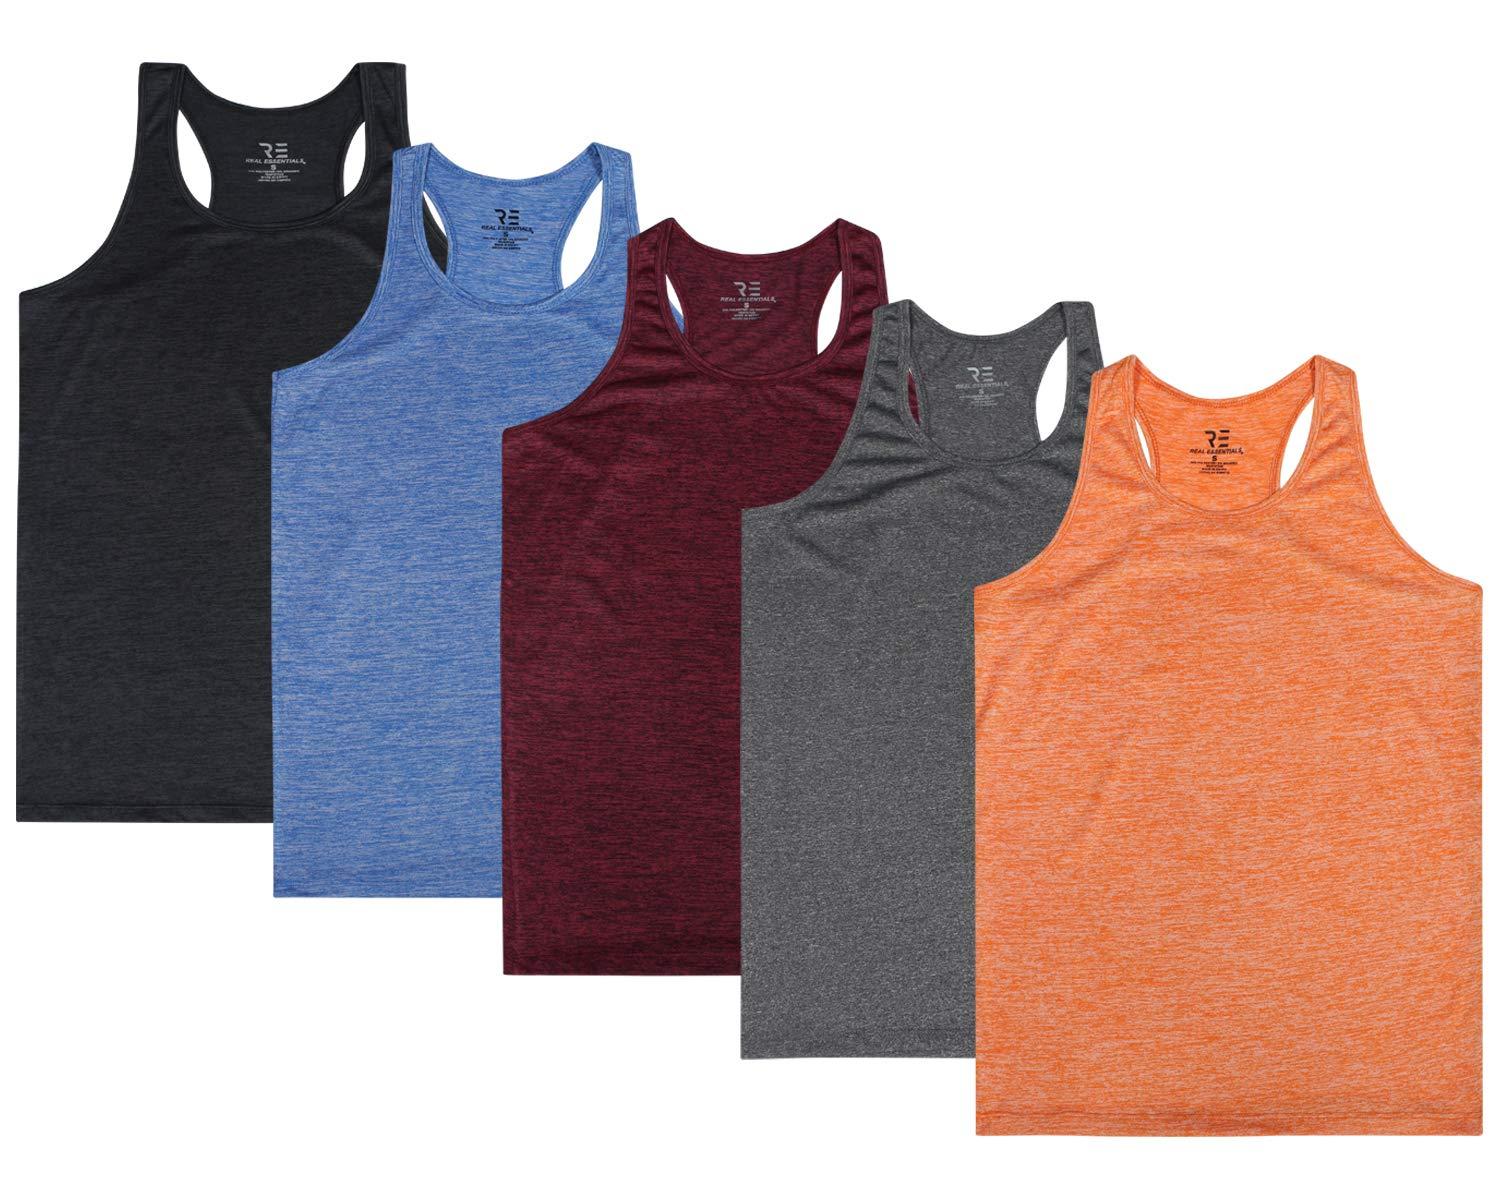 5 Pack:Women's Quick Dry Fit Dri-Fit Ladies Tops Athletic Yoga Workout Running Gym Active wear Exercise Clothes Racerback Sleeveless Flowy Tank Top - Set 2,L